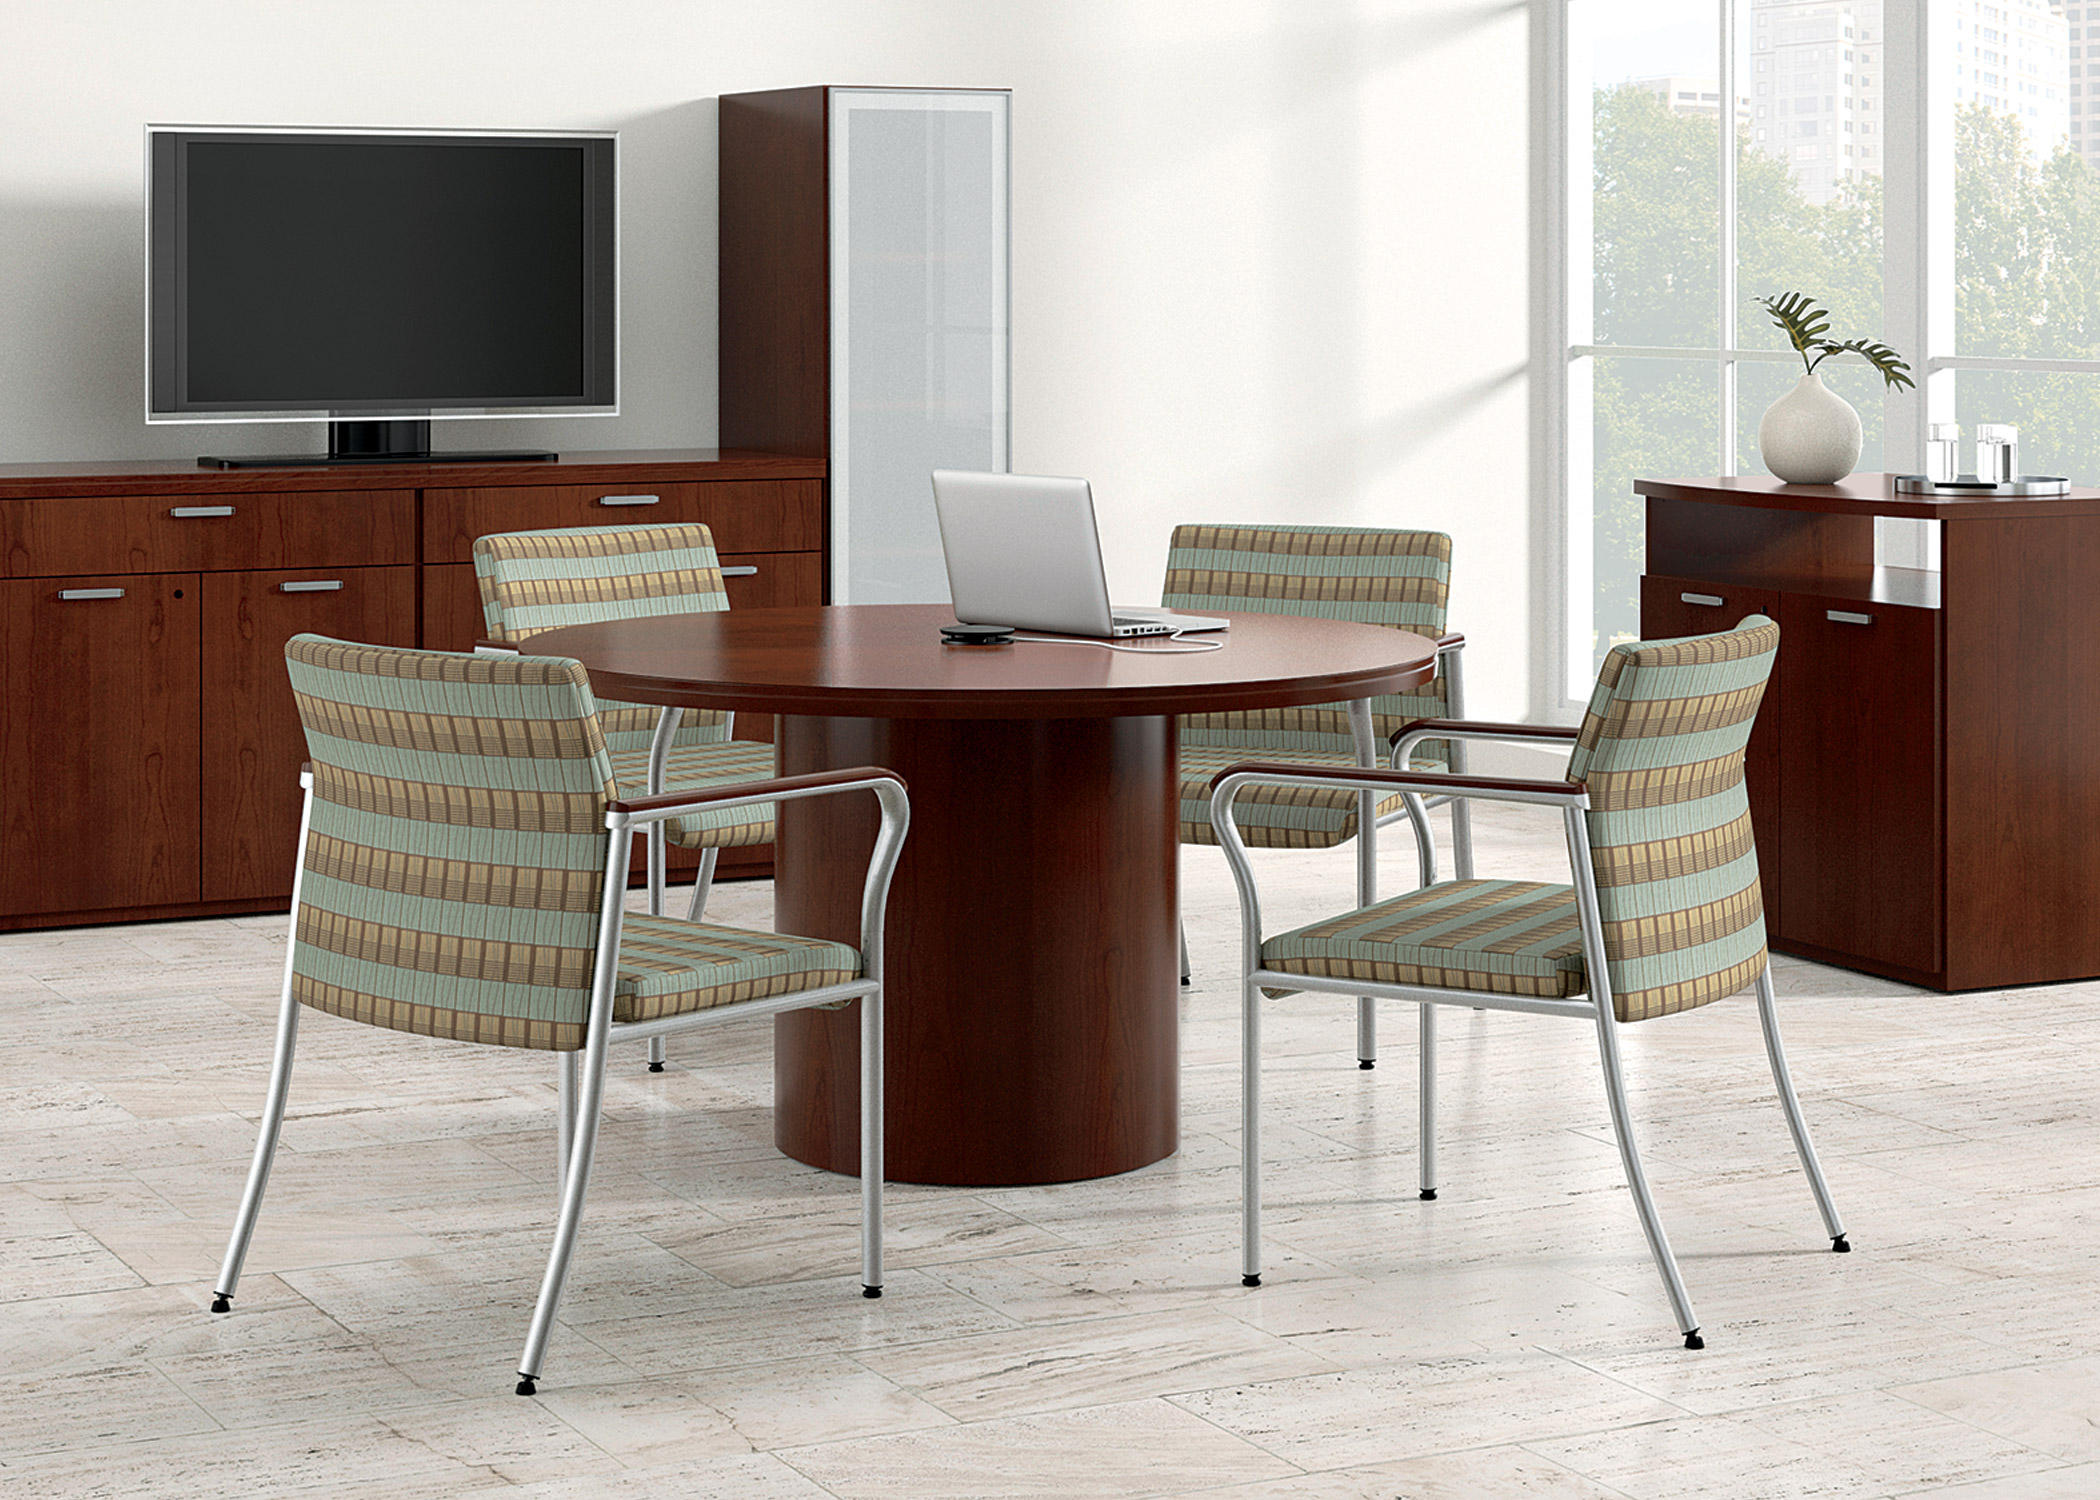 Choosing furniture accessories that are specially designed for the workplace ensures they are hardy enough to withstand regular use. Office National has all the accessories that will complement your workplace, fulfilling basic needs and giving a well-rounded and professional look to your workplace.